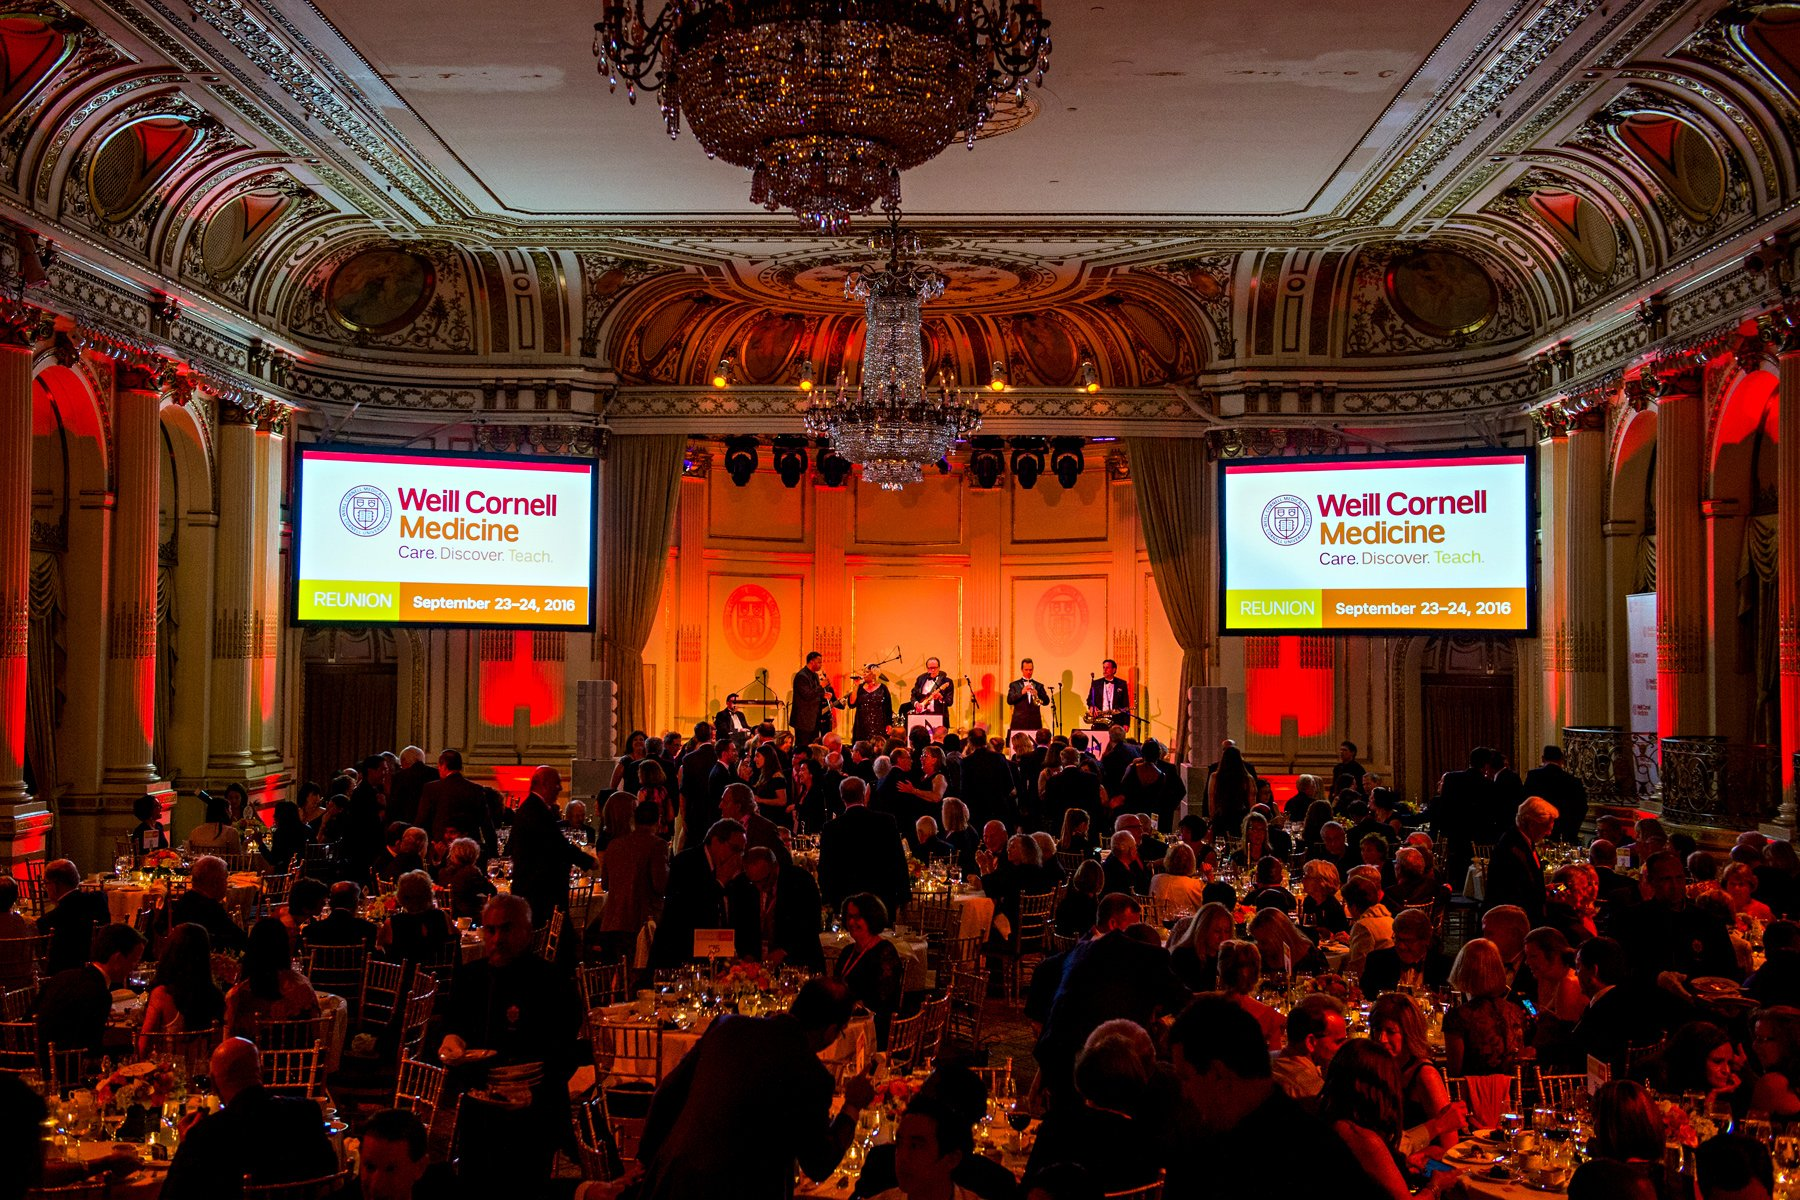 Corporate event photography of Weill Cornell Medicine's Reunion Weekend.